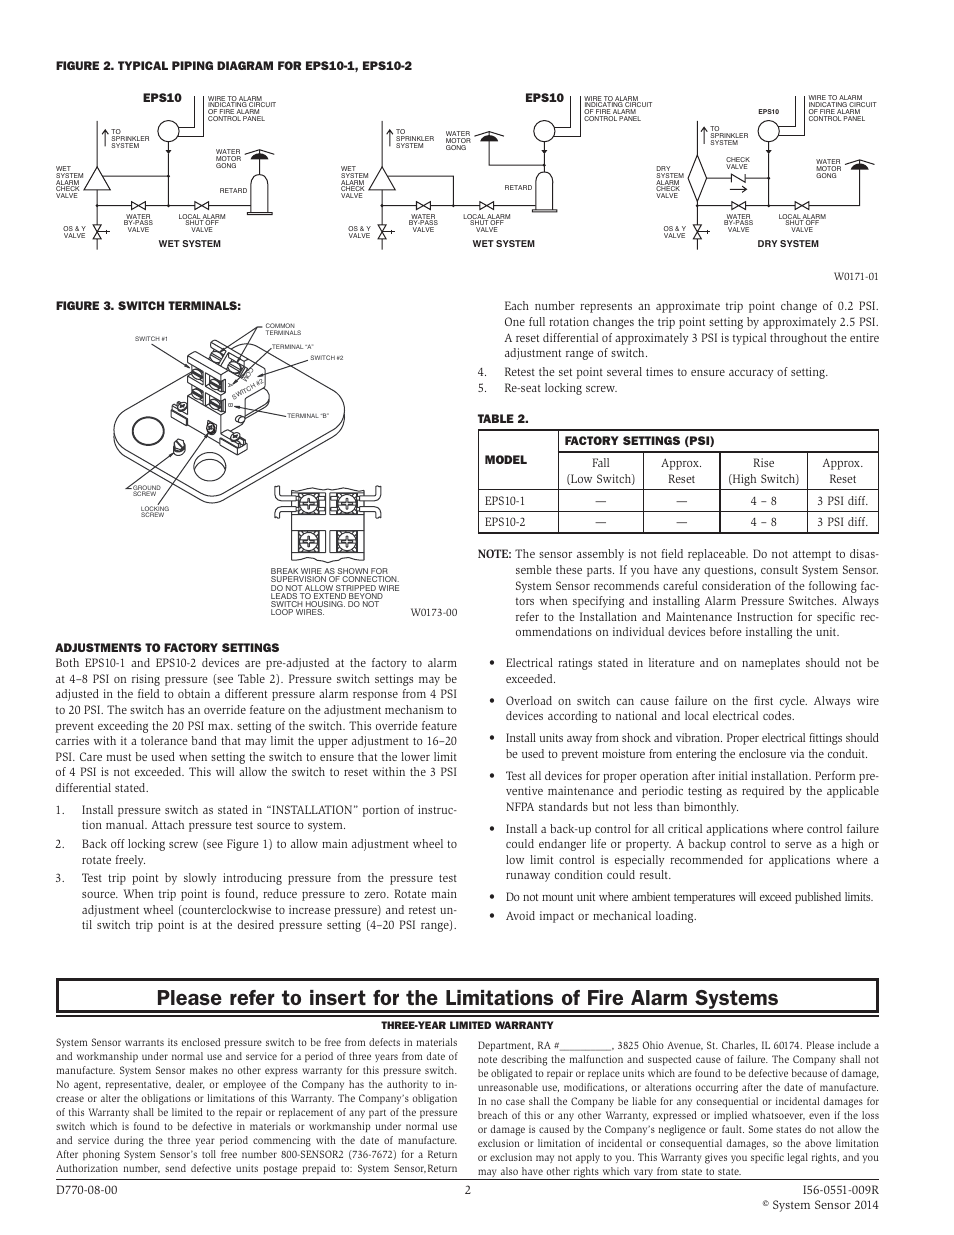 system sensor eps10 1 and eps10 2 page2 figure 3 switch terminals, eps10 system sensor eps10 1 and 5R55E Transmission Wiring Diagram at bayanpartner.co